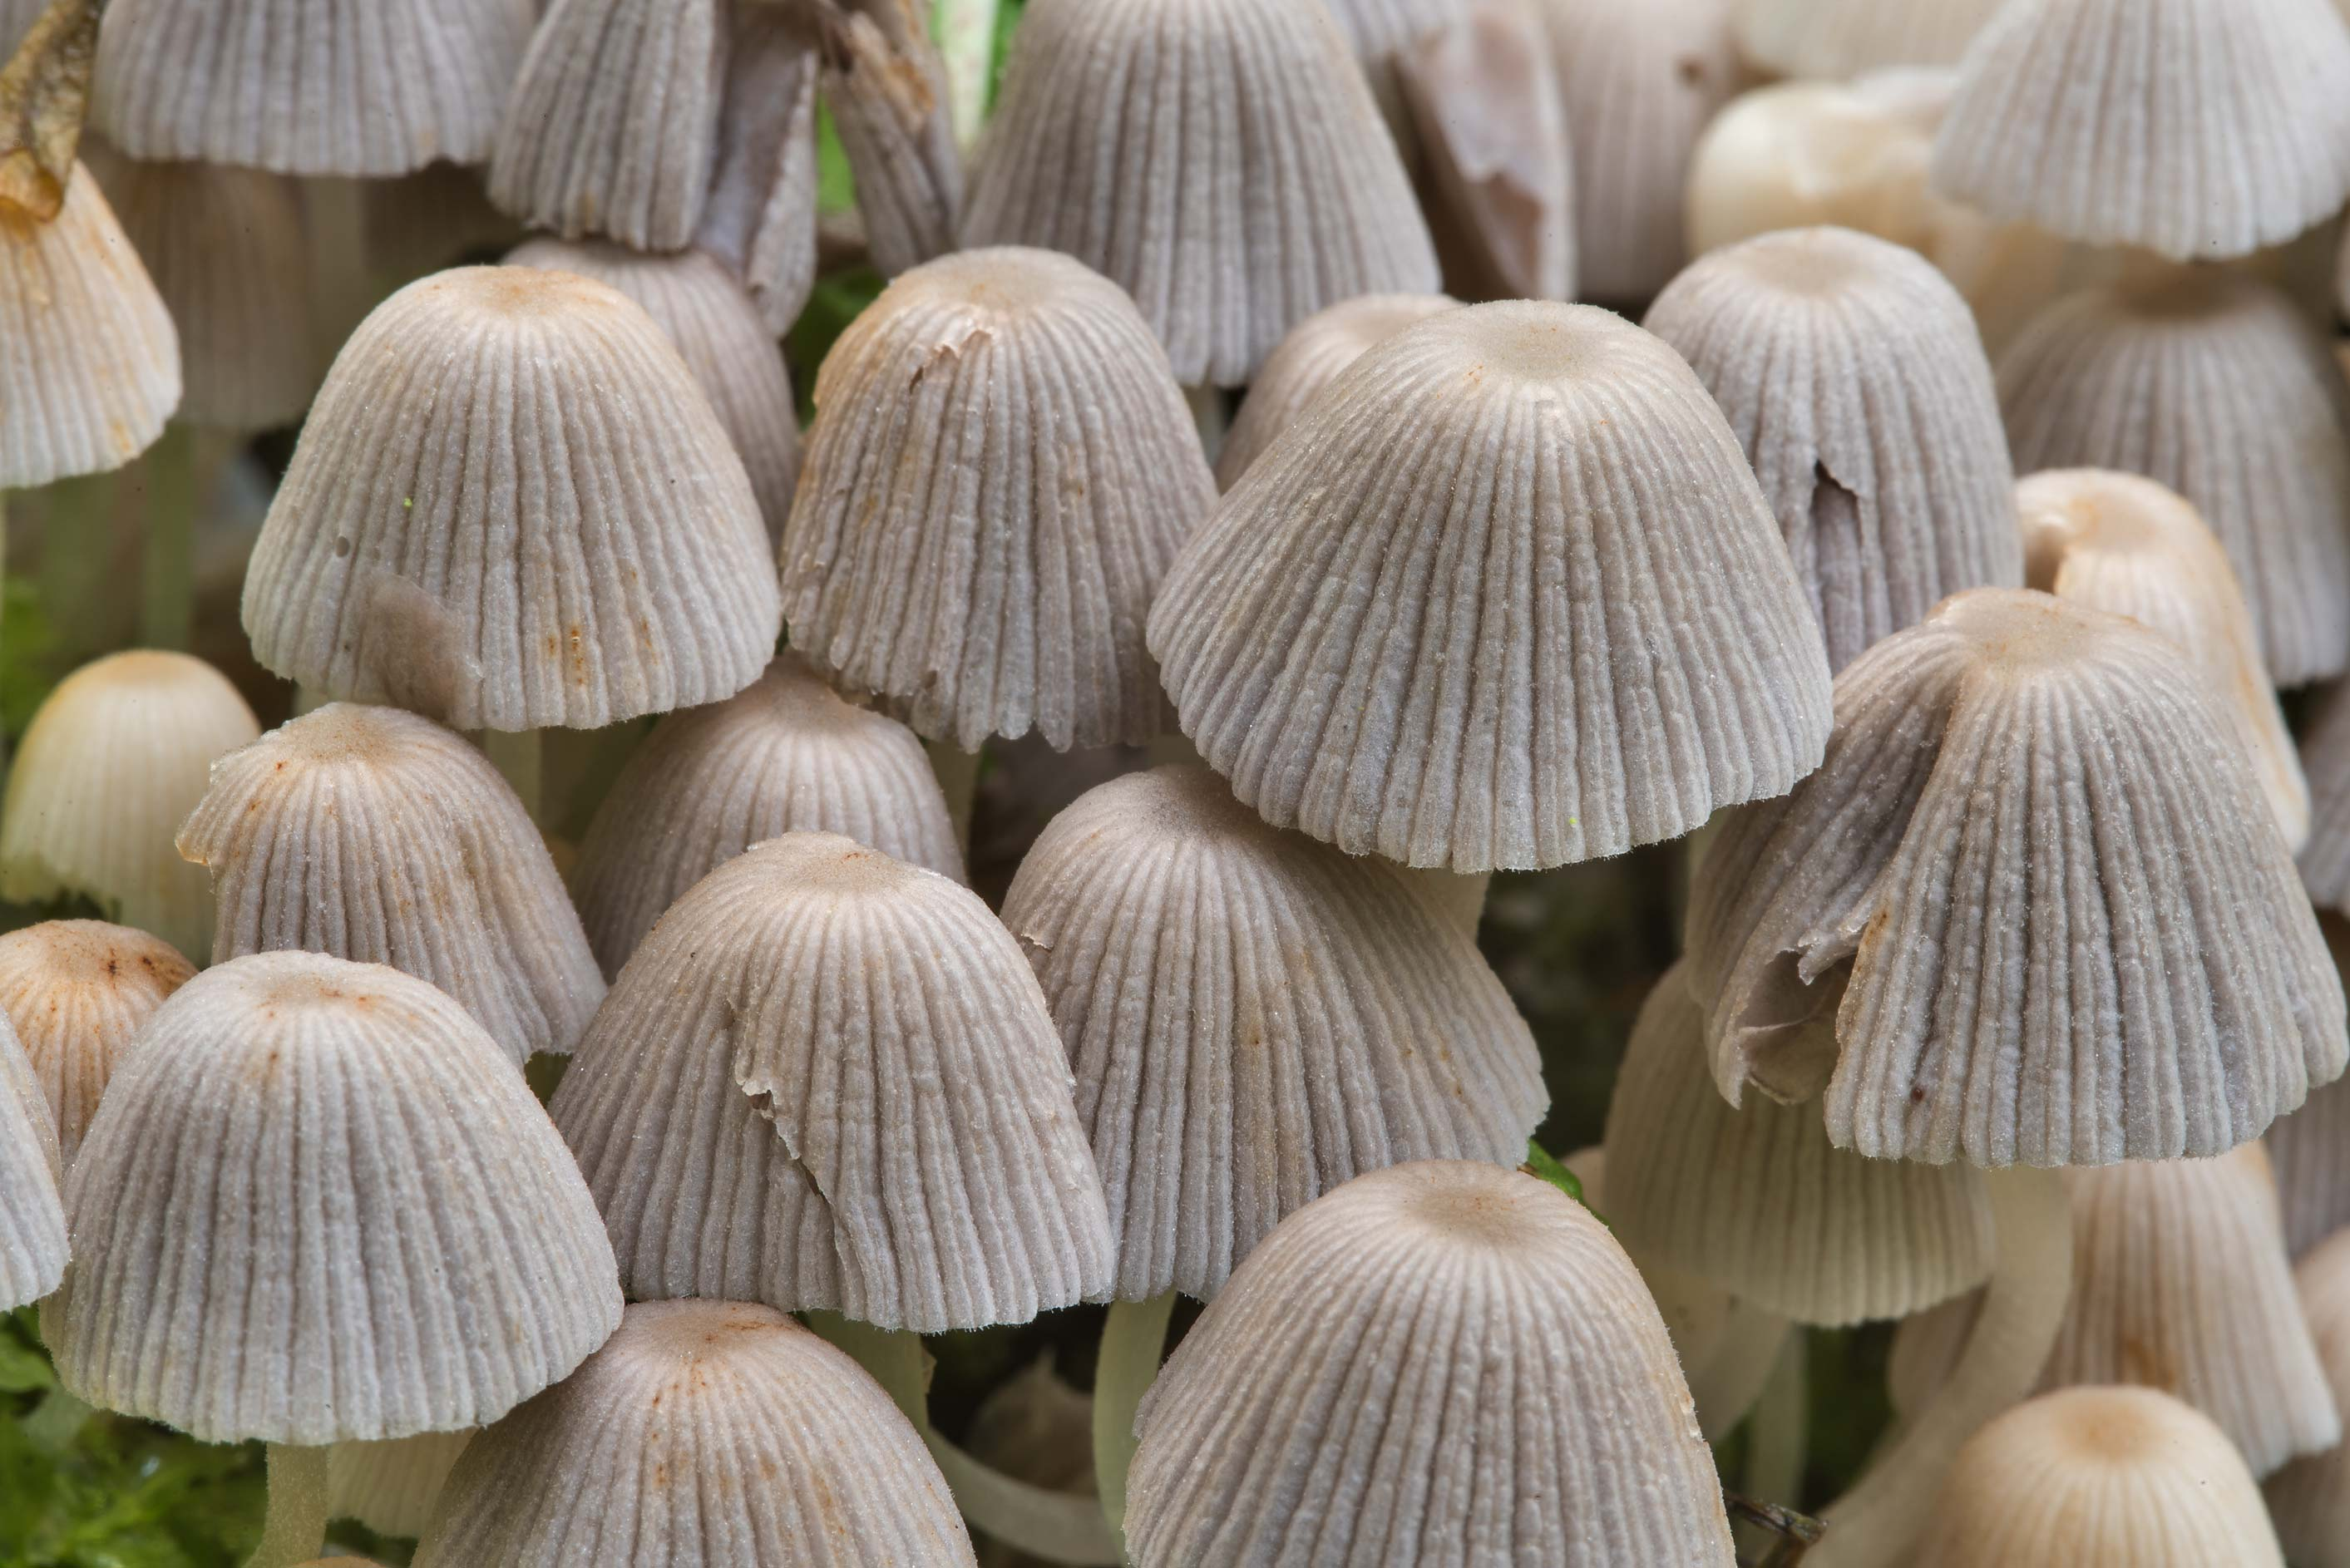 Fairy inkcap mushrooms (Coprinellus disseminatus) in Sosnovka Park. St.Petersburg, Russia